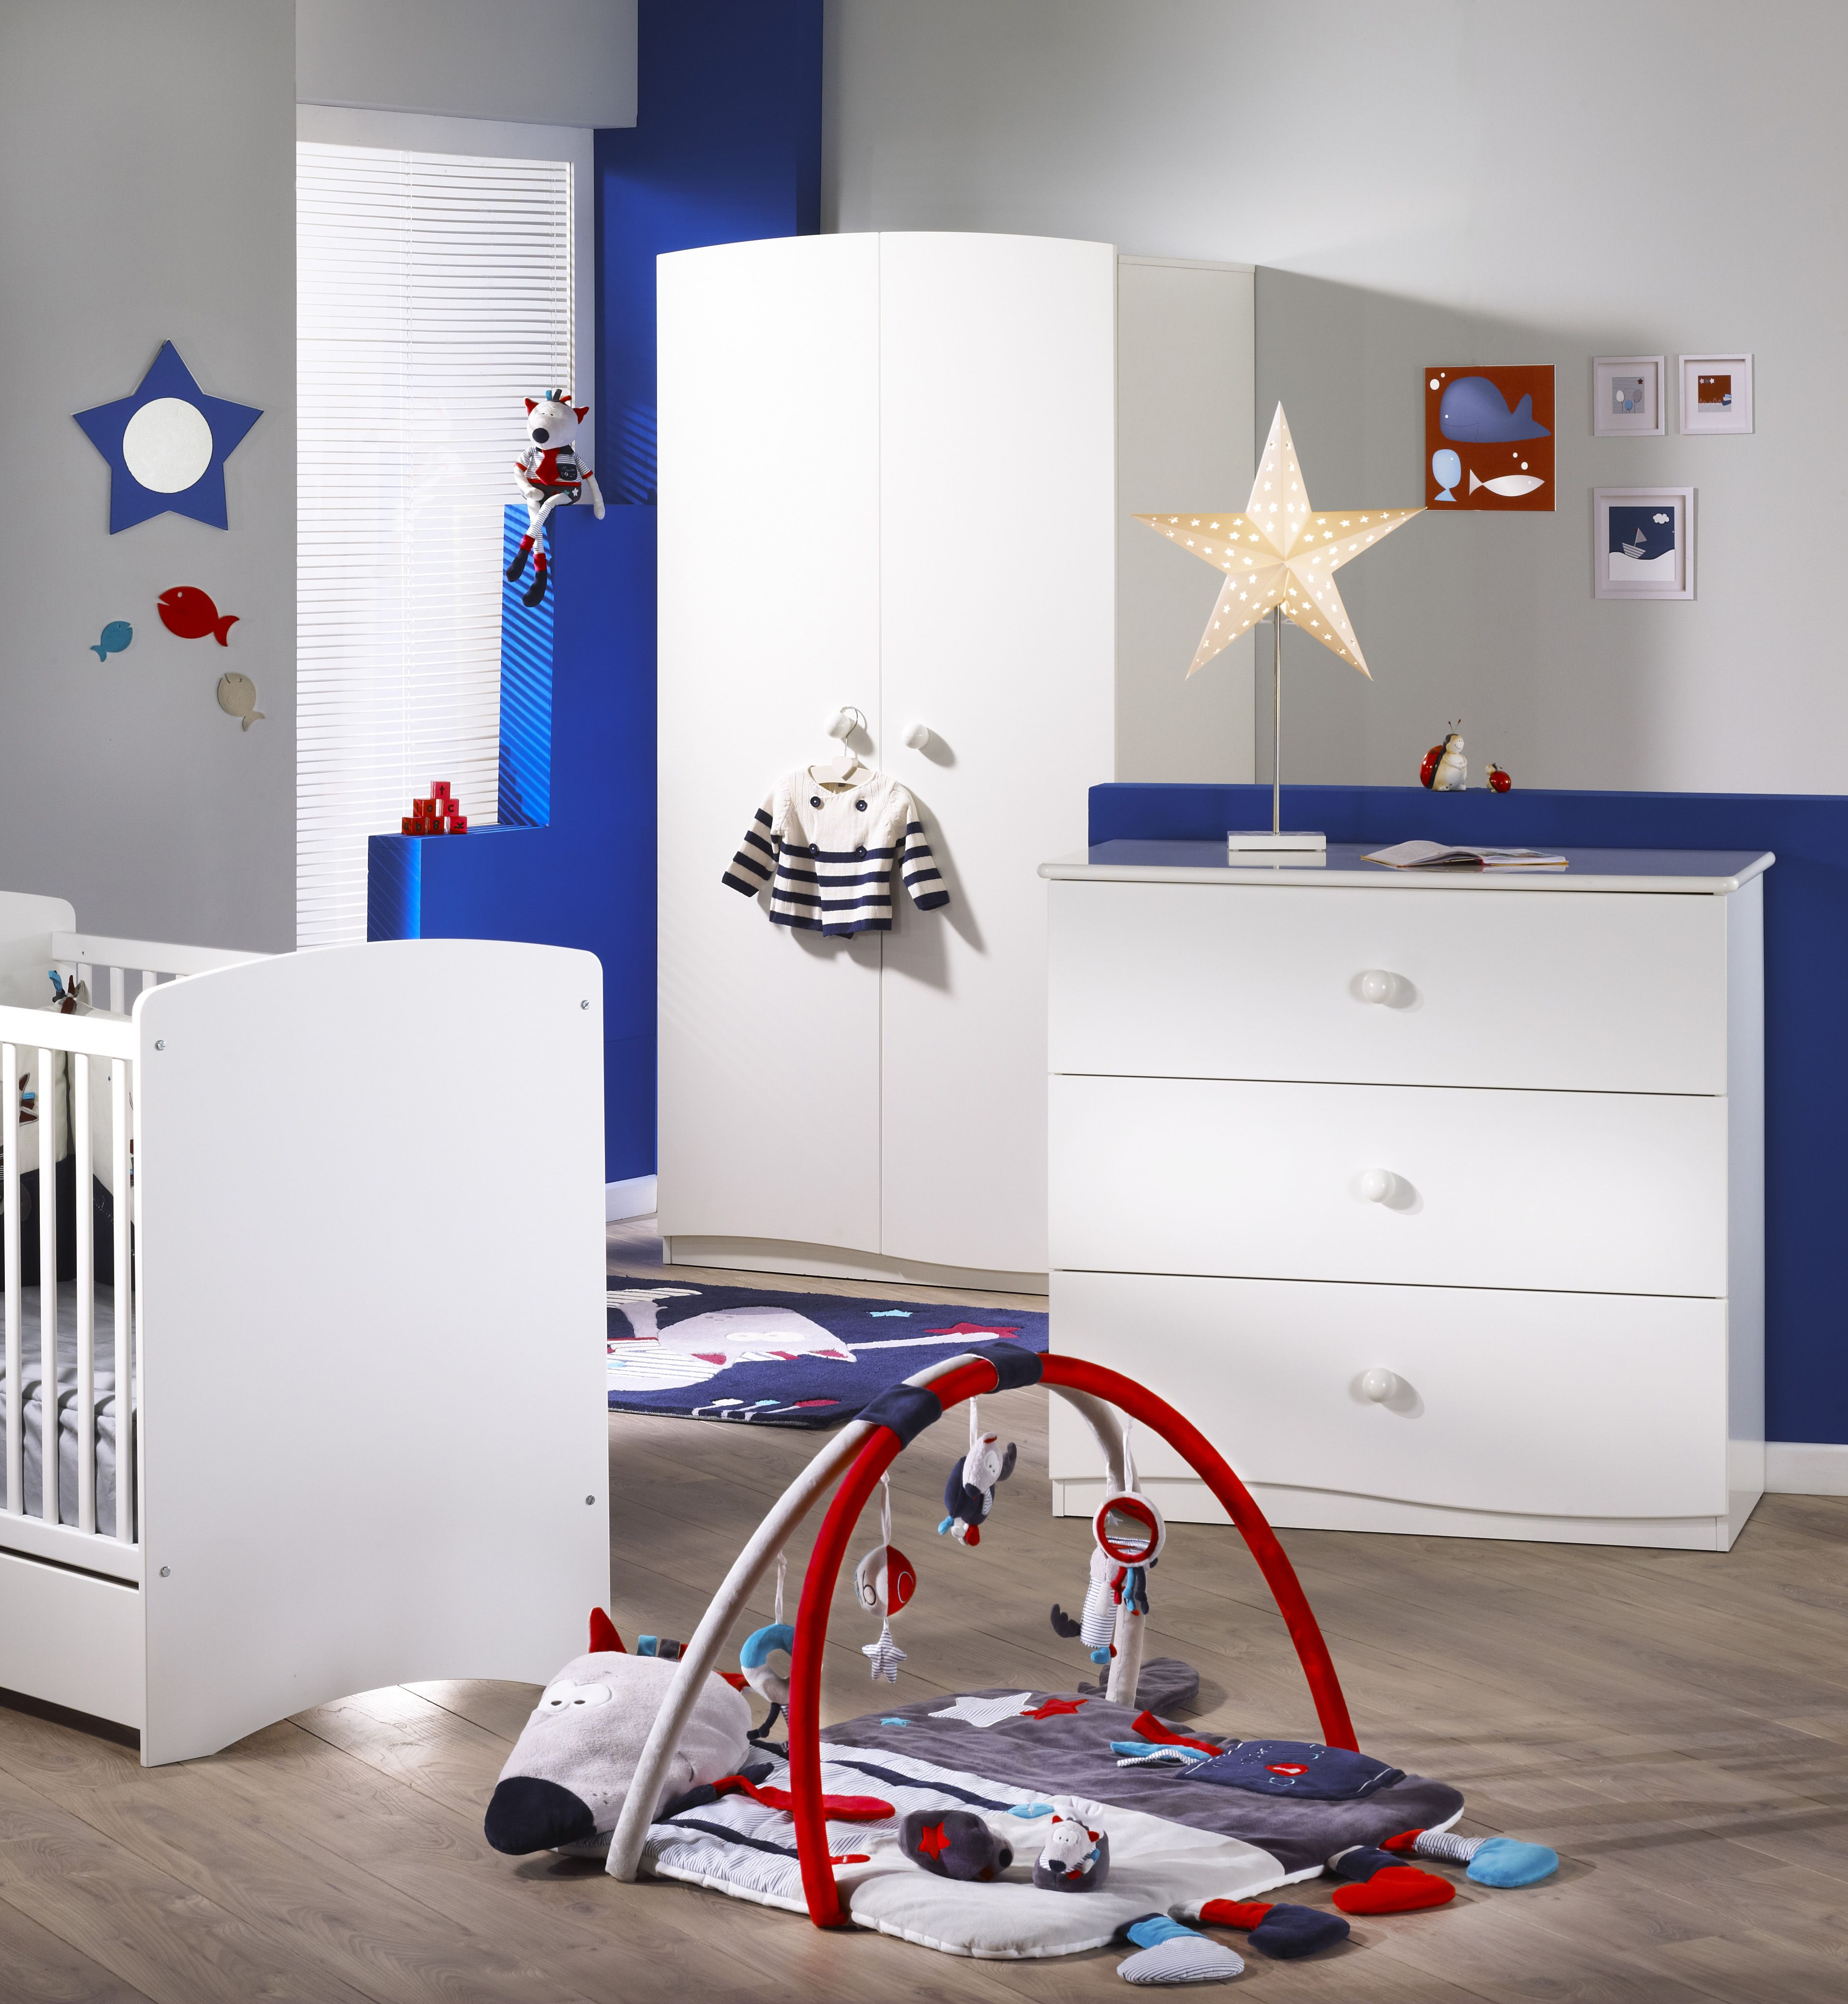 Chambre Enfant Sauthon Chambre Enfant Sauthon Chambre Opale Sauthon Lovely